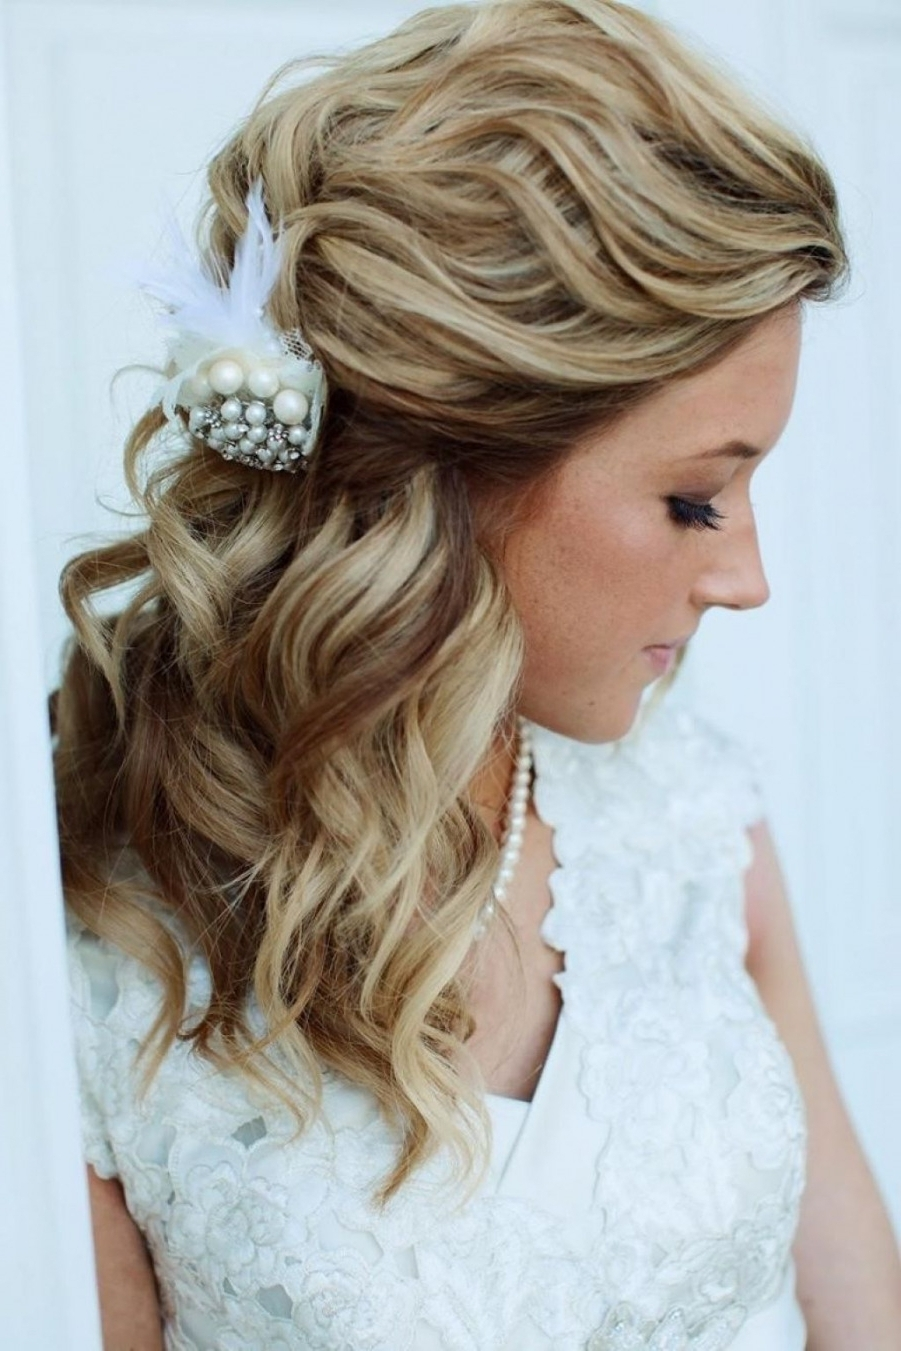 Well Known Shoulder Length Wedding Hairstyles In √ 24+ Nice Wedding Hairstyles For Shoulder Length Hair: Hairstyle (View 3 of 15)